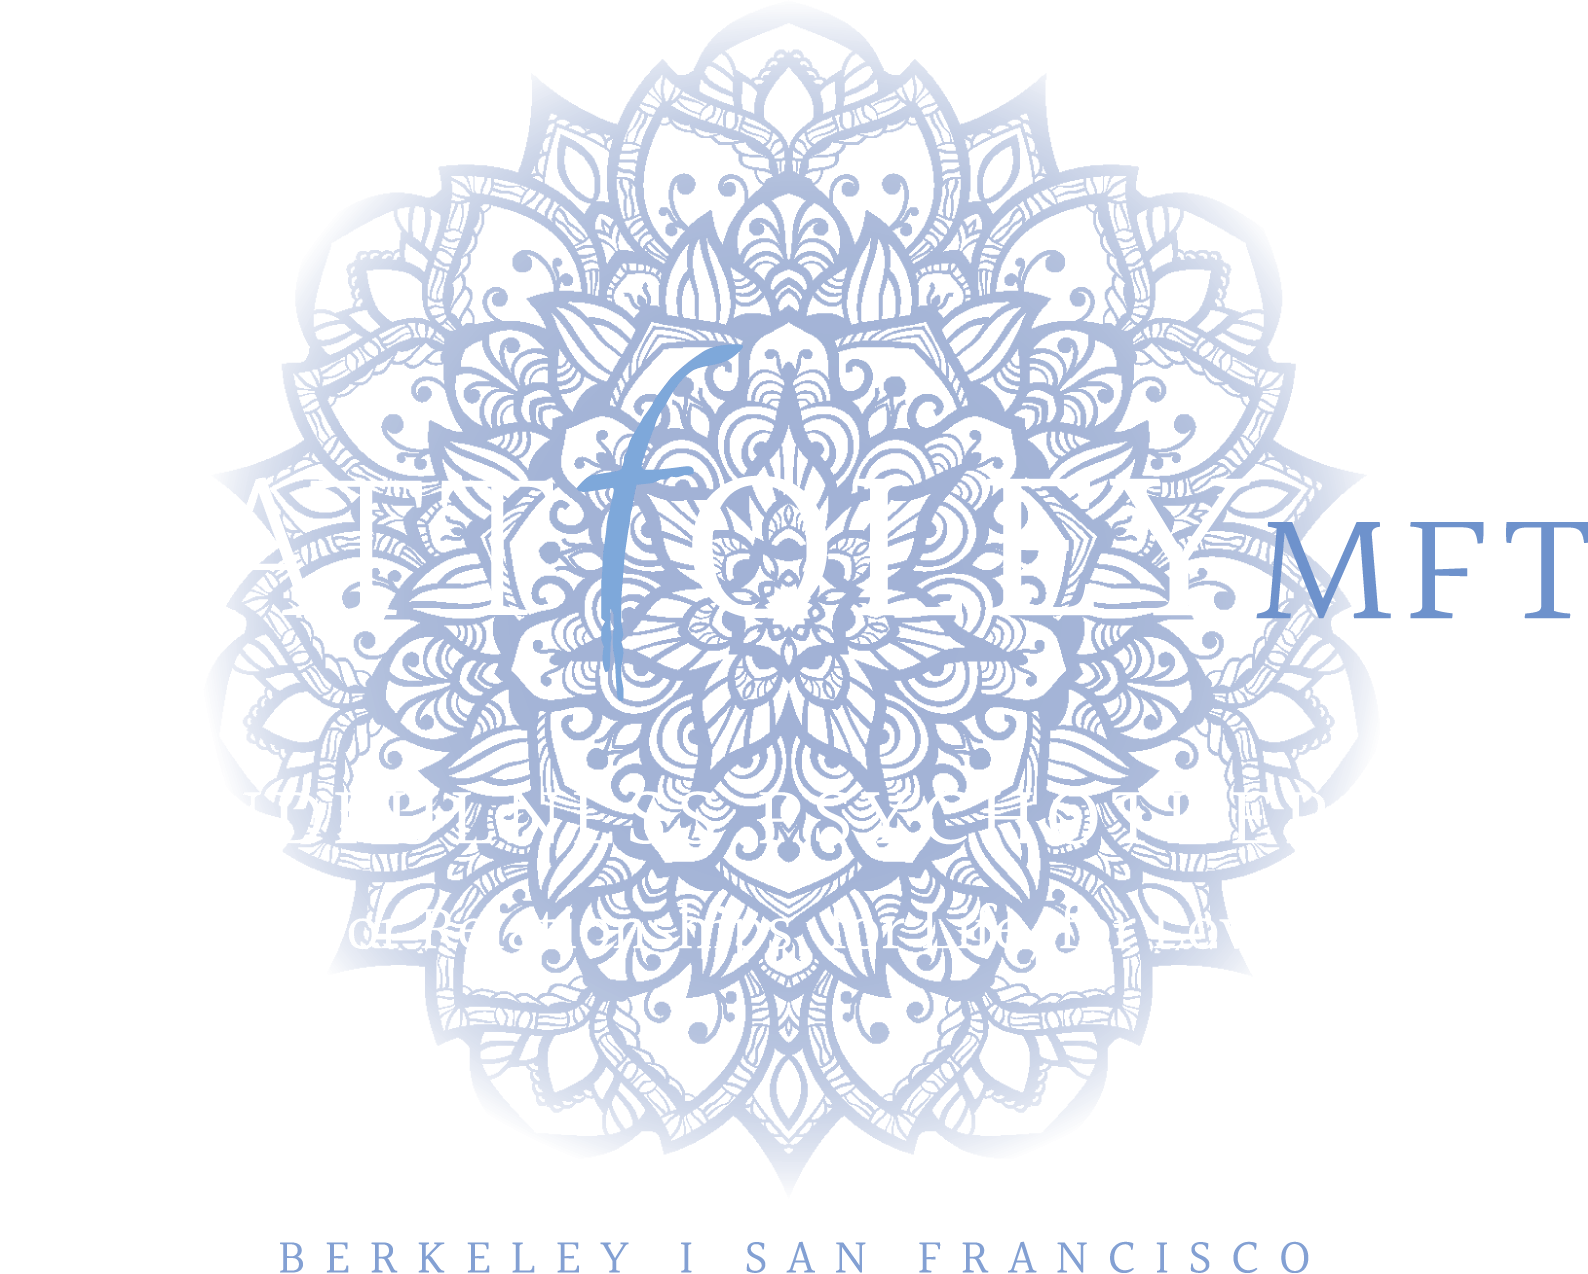 Matt Foley, MFT - San Francisco